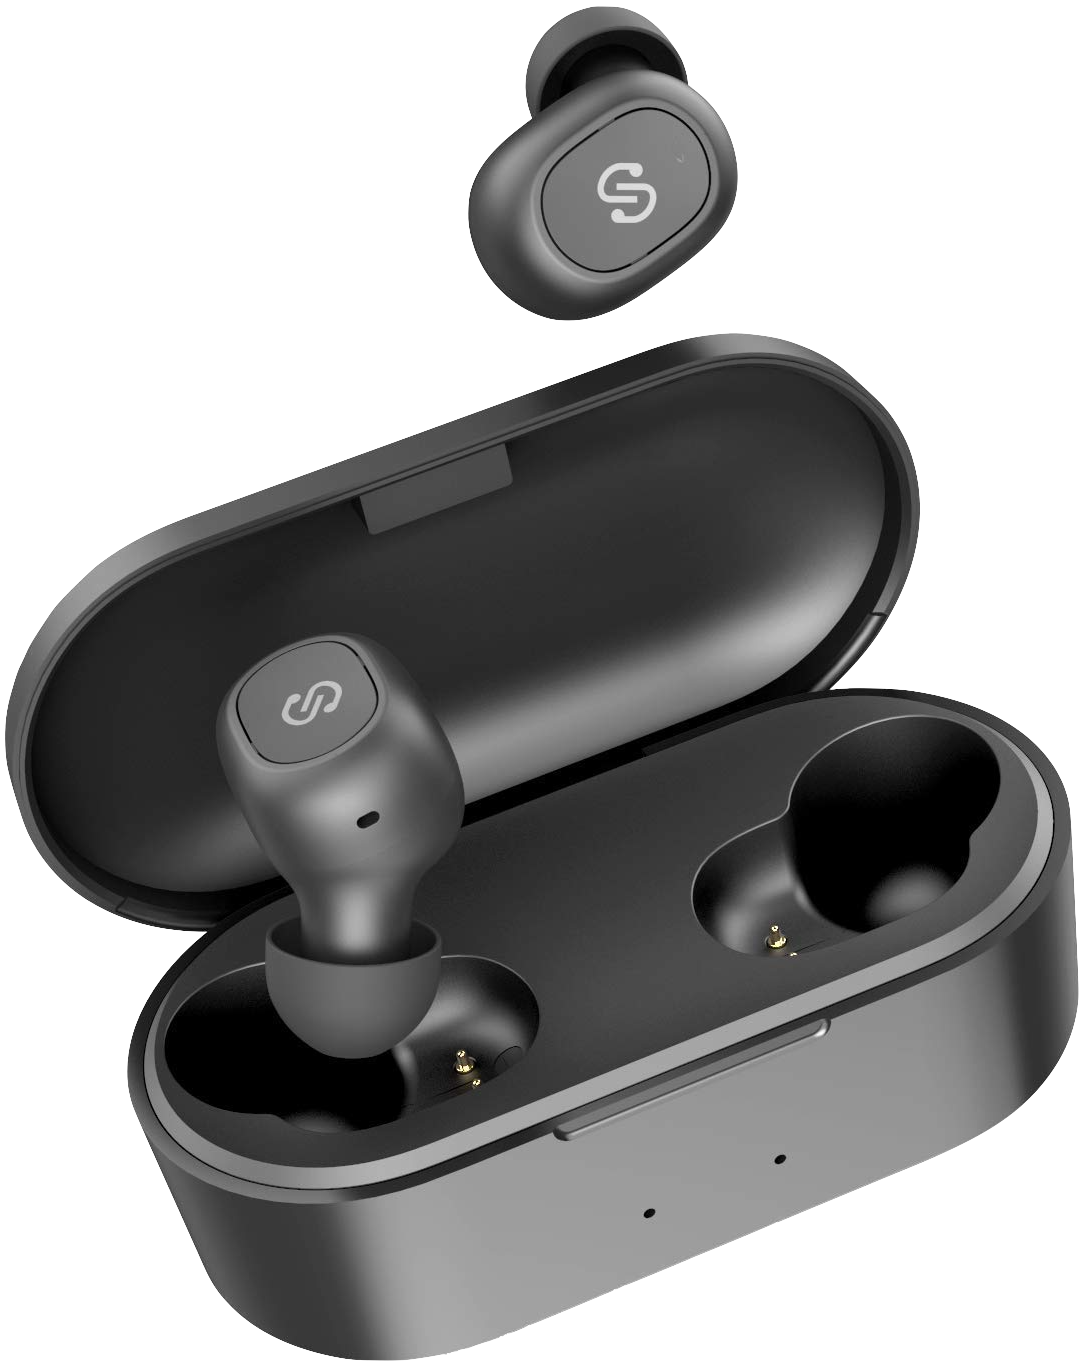 Best Cheap True Wireless Earbuds In 2020 Android Central In 2020 Earbuds Headphones Wireless Earbuds